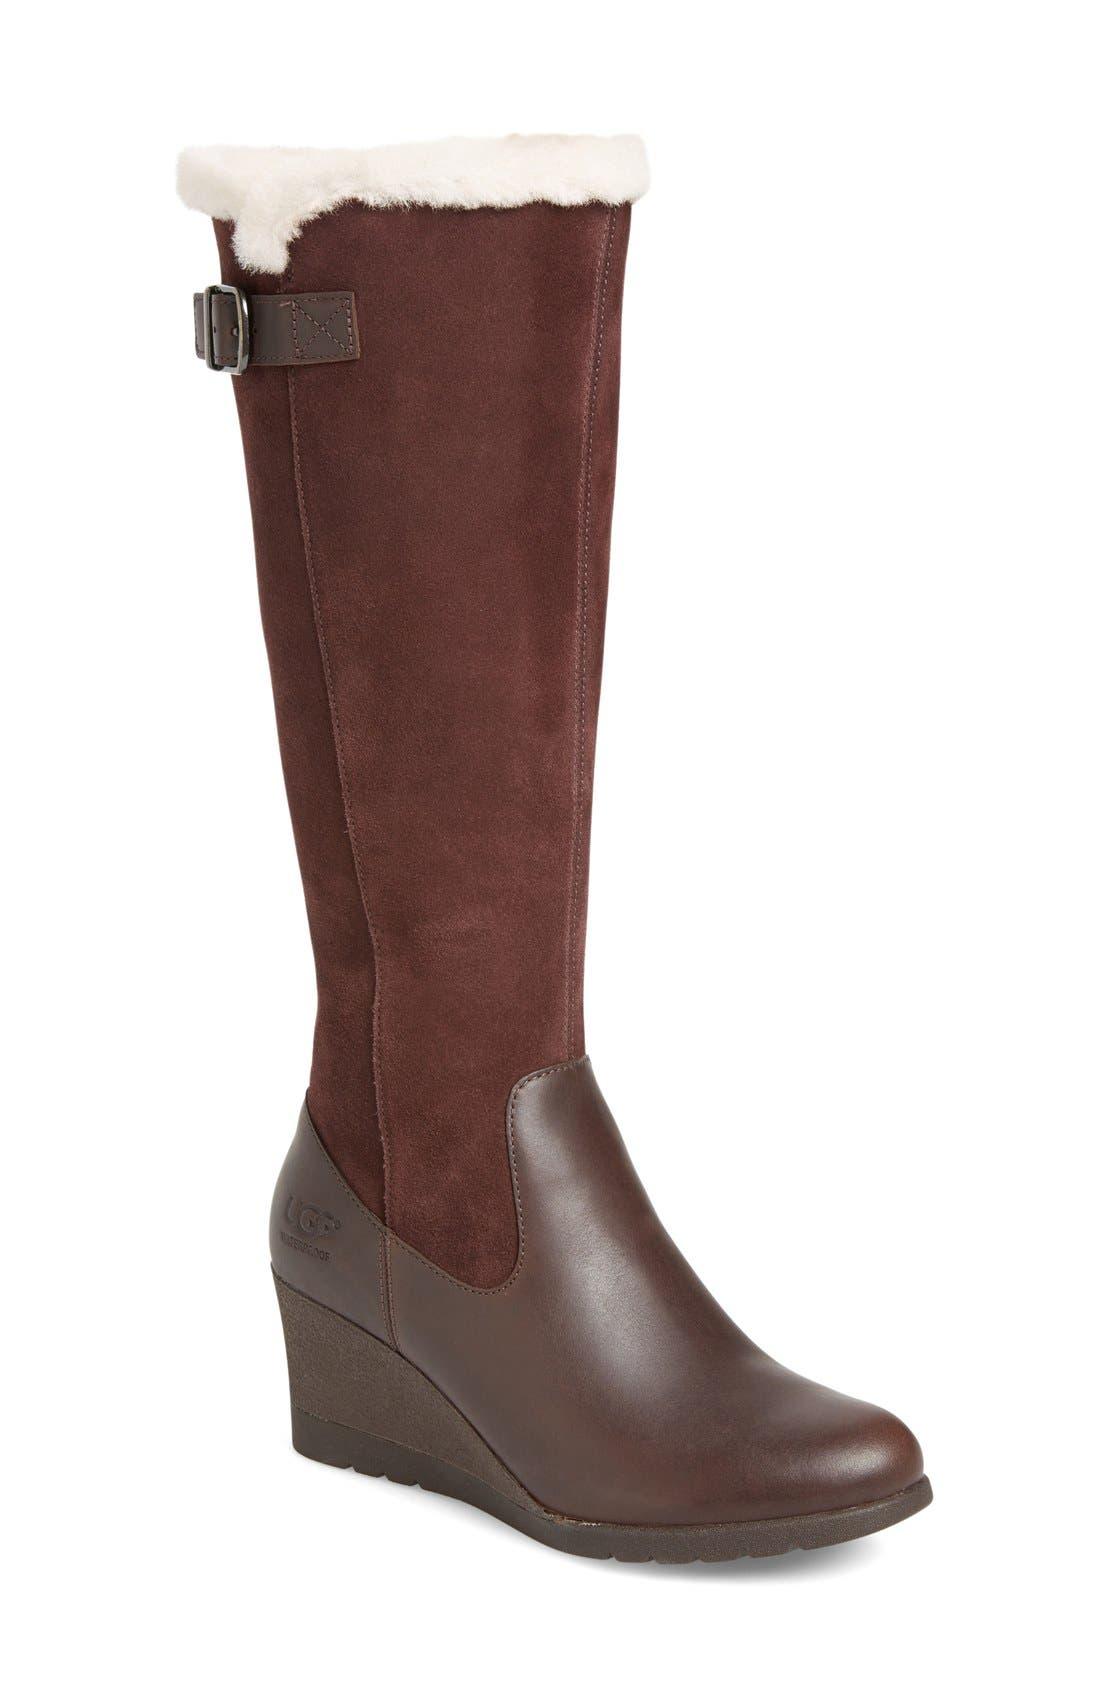 Alternate Image 1 Selected - UGG® Mischa Waterproof Wedge Boot (Women)